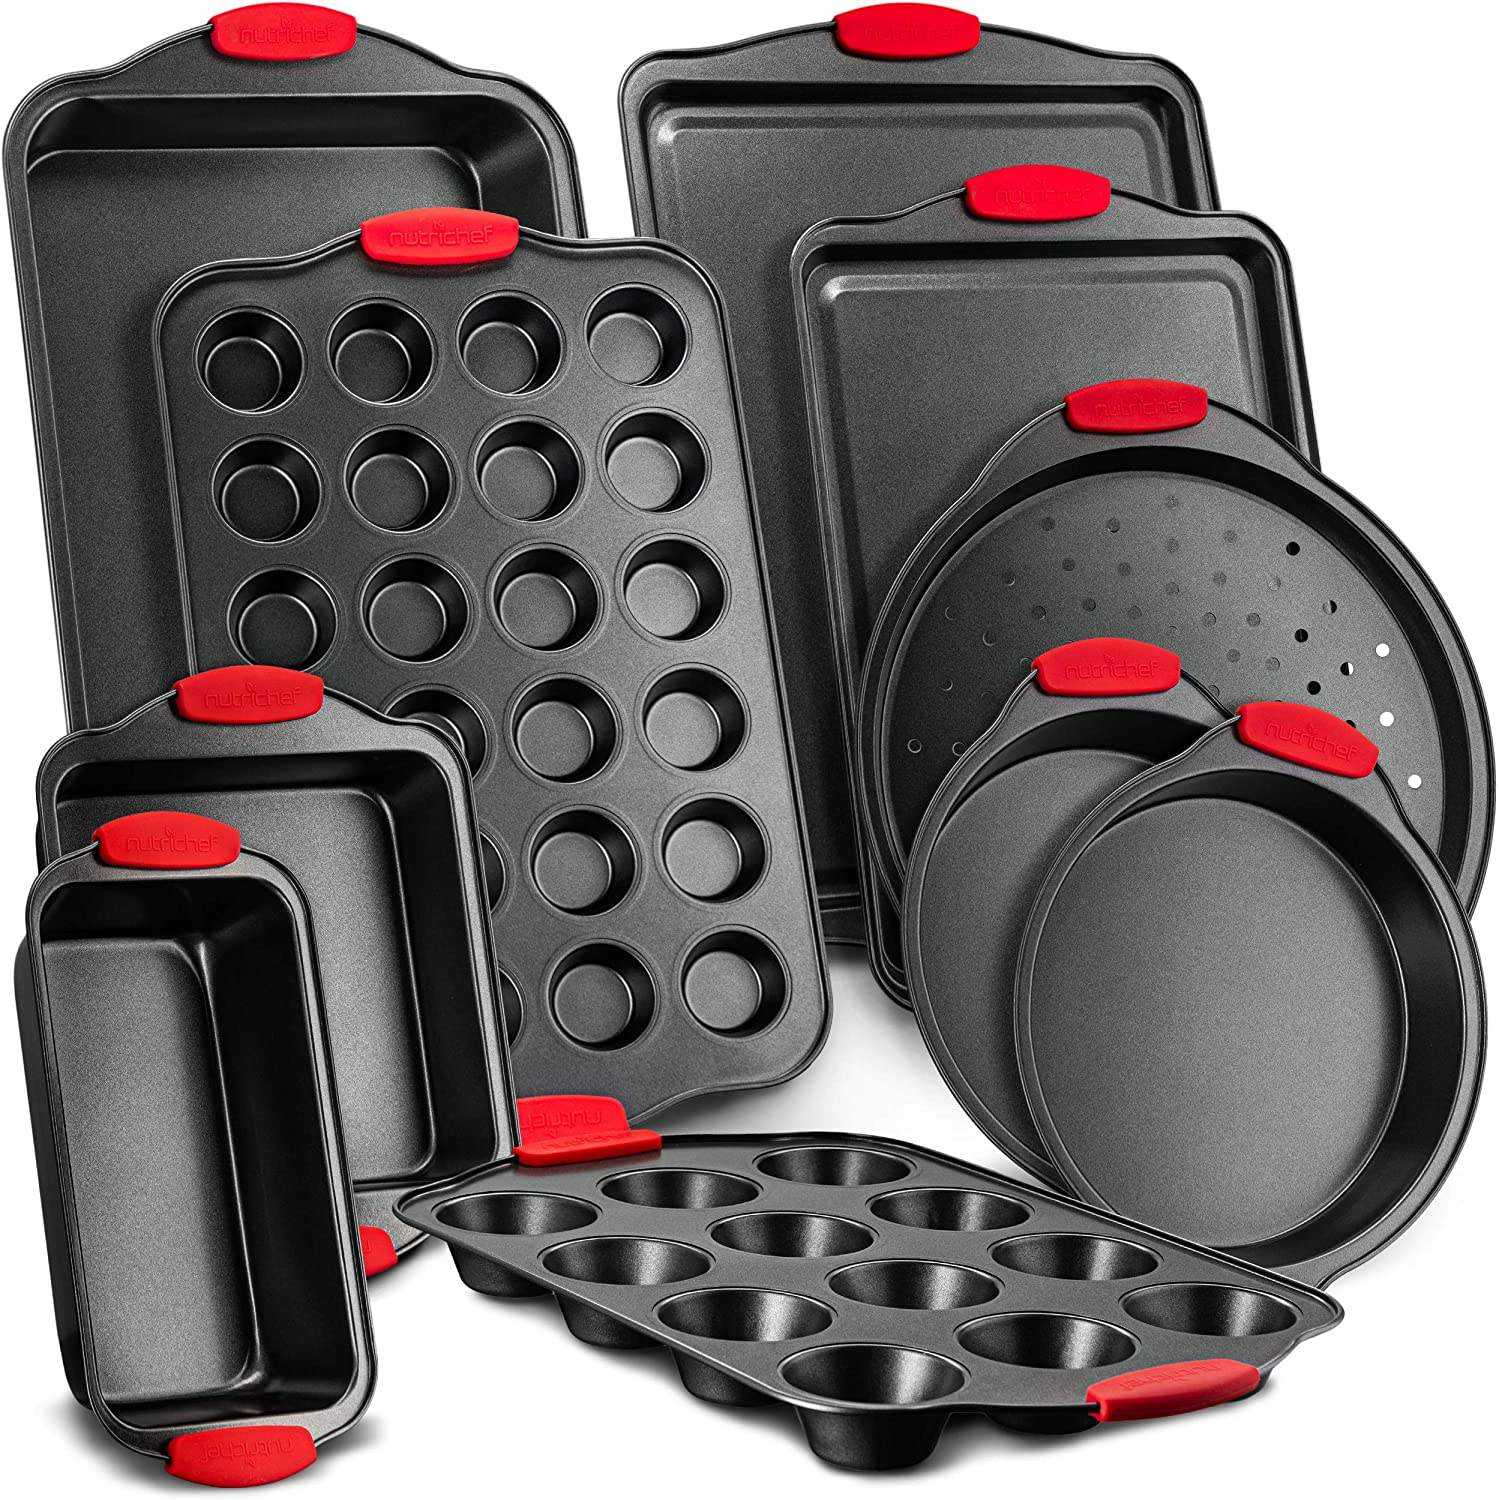 Customized Carbon Steel Nonstick 10 Piece Bakeware Cake Baking Tools Set for Home Loaf Cookie Sheet Pan with Silicone Handles